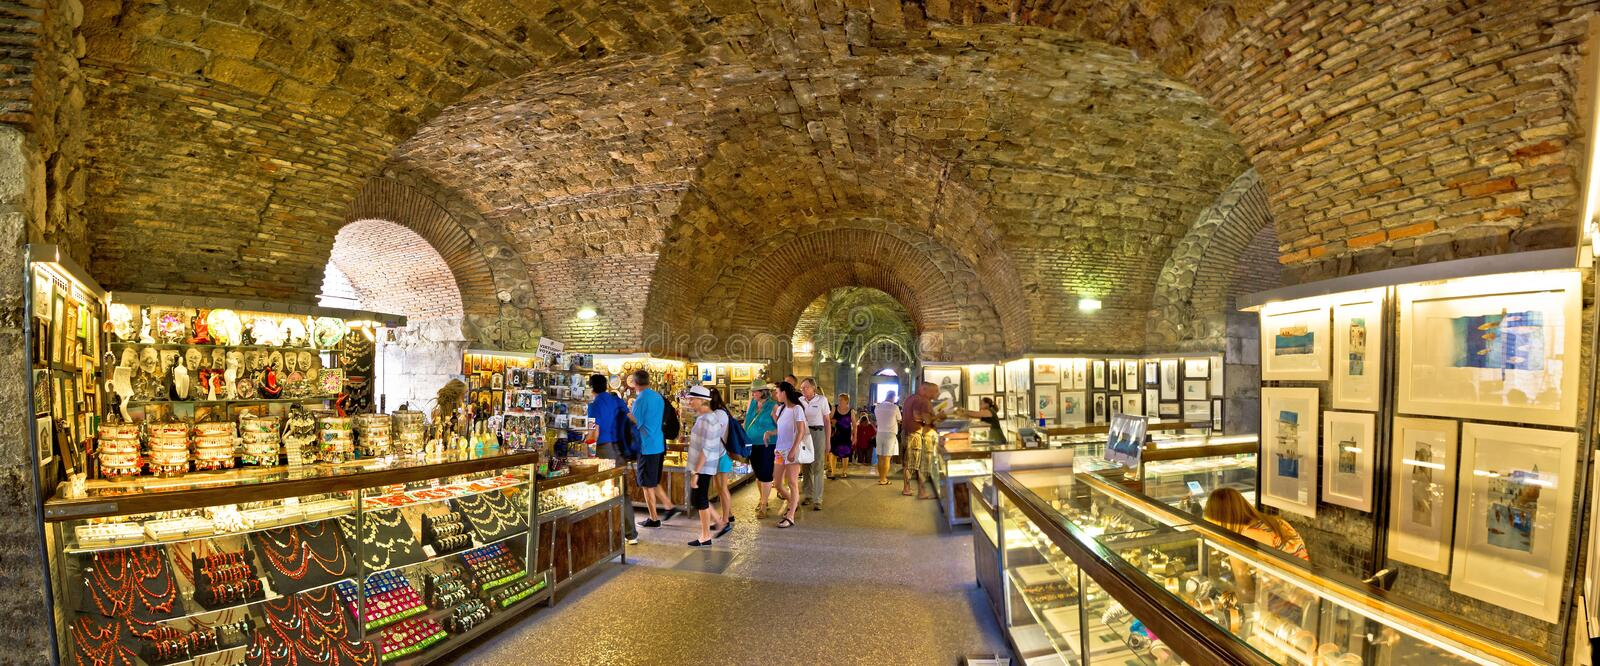 Roman Emperor Diocletian palace catacombs in Split stock photography